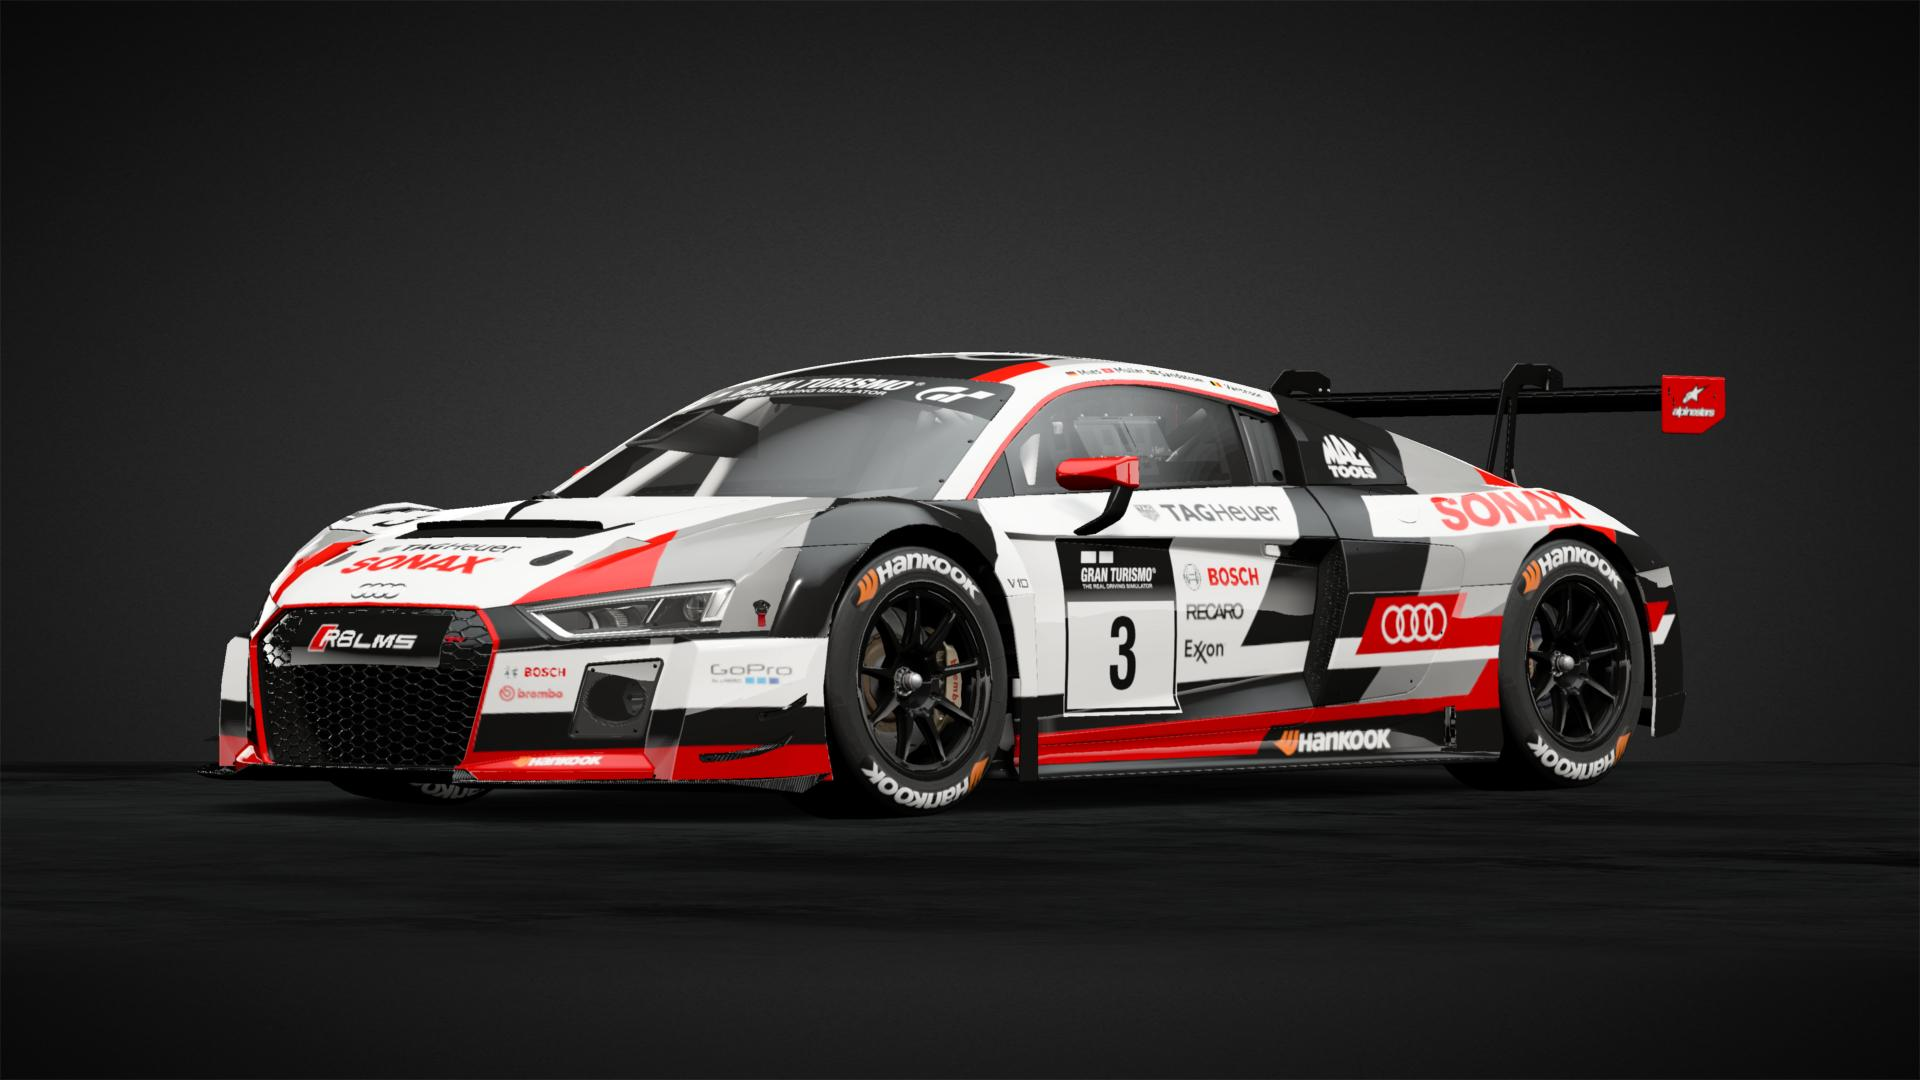 Retro Audi Sport R8 Gt3 Car Livery By Lghi8 Community Gran